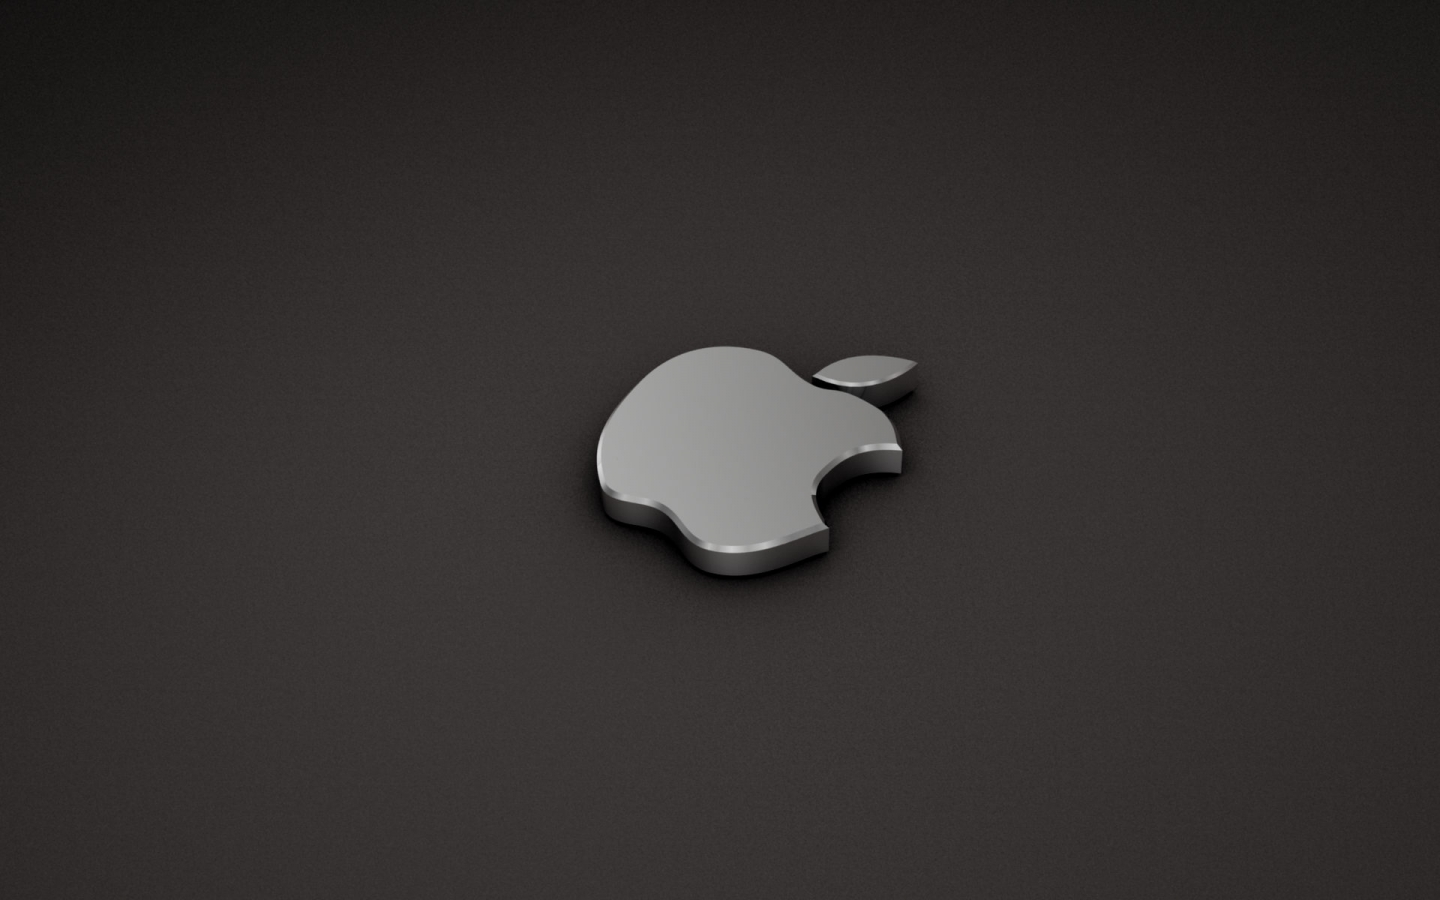 download apple steel 3d logo wallpaper in other wallpapers with all 311